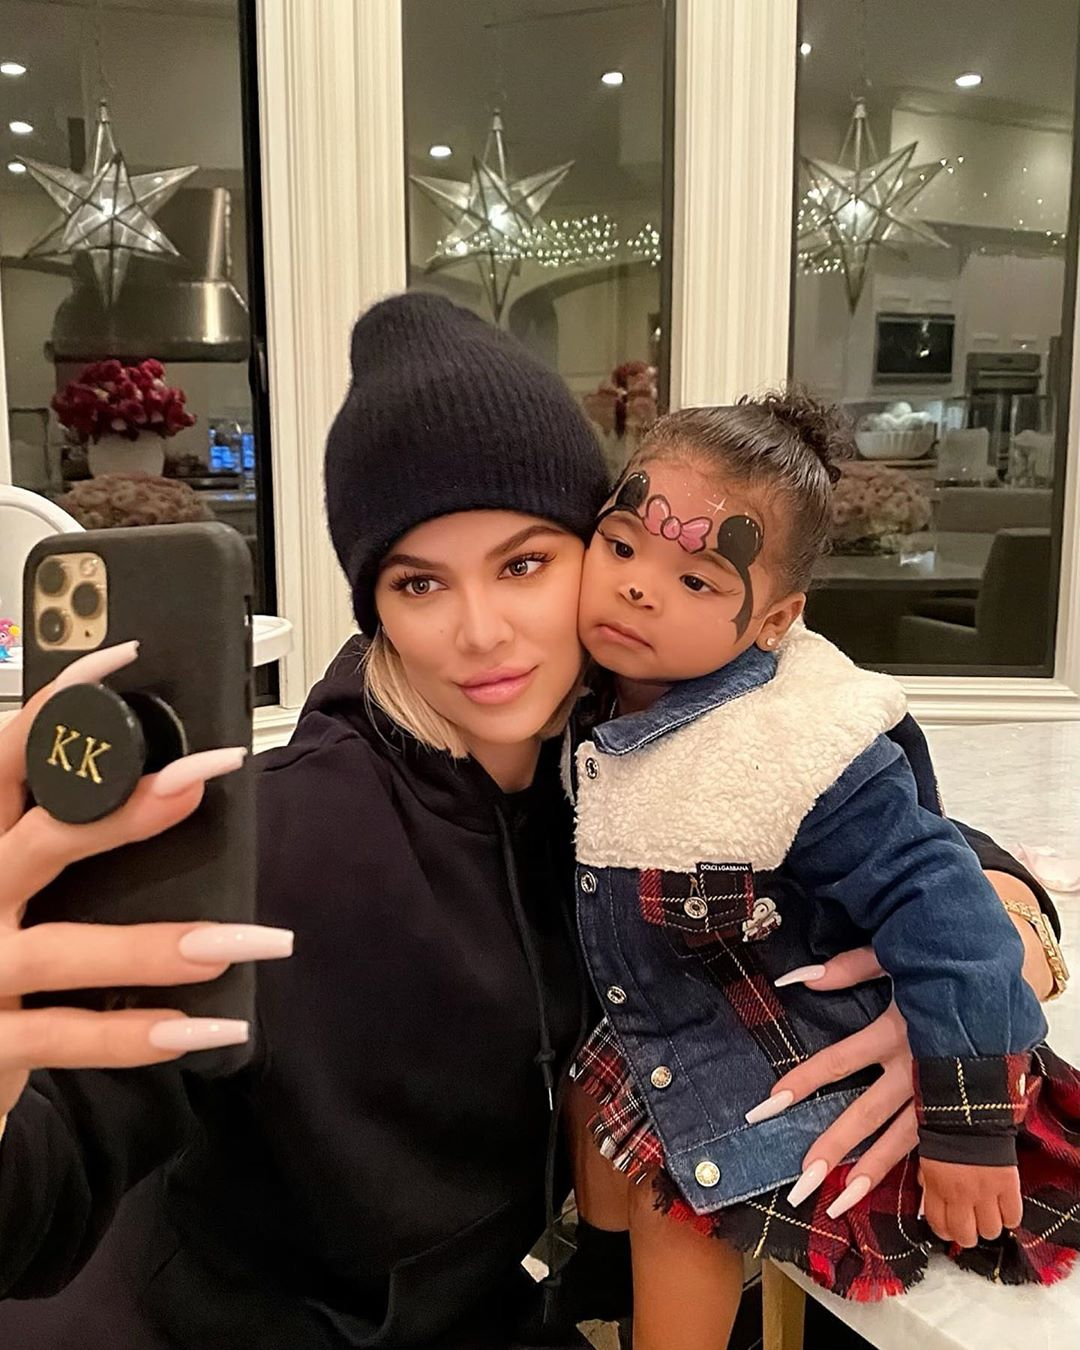 Khloe Kardashian Shares Sweet New Selfies With True Thompson: 'She Kept Asking to Take Pictures'